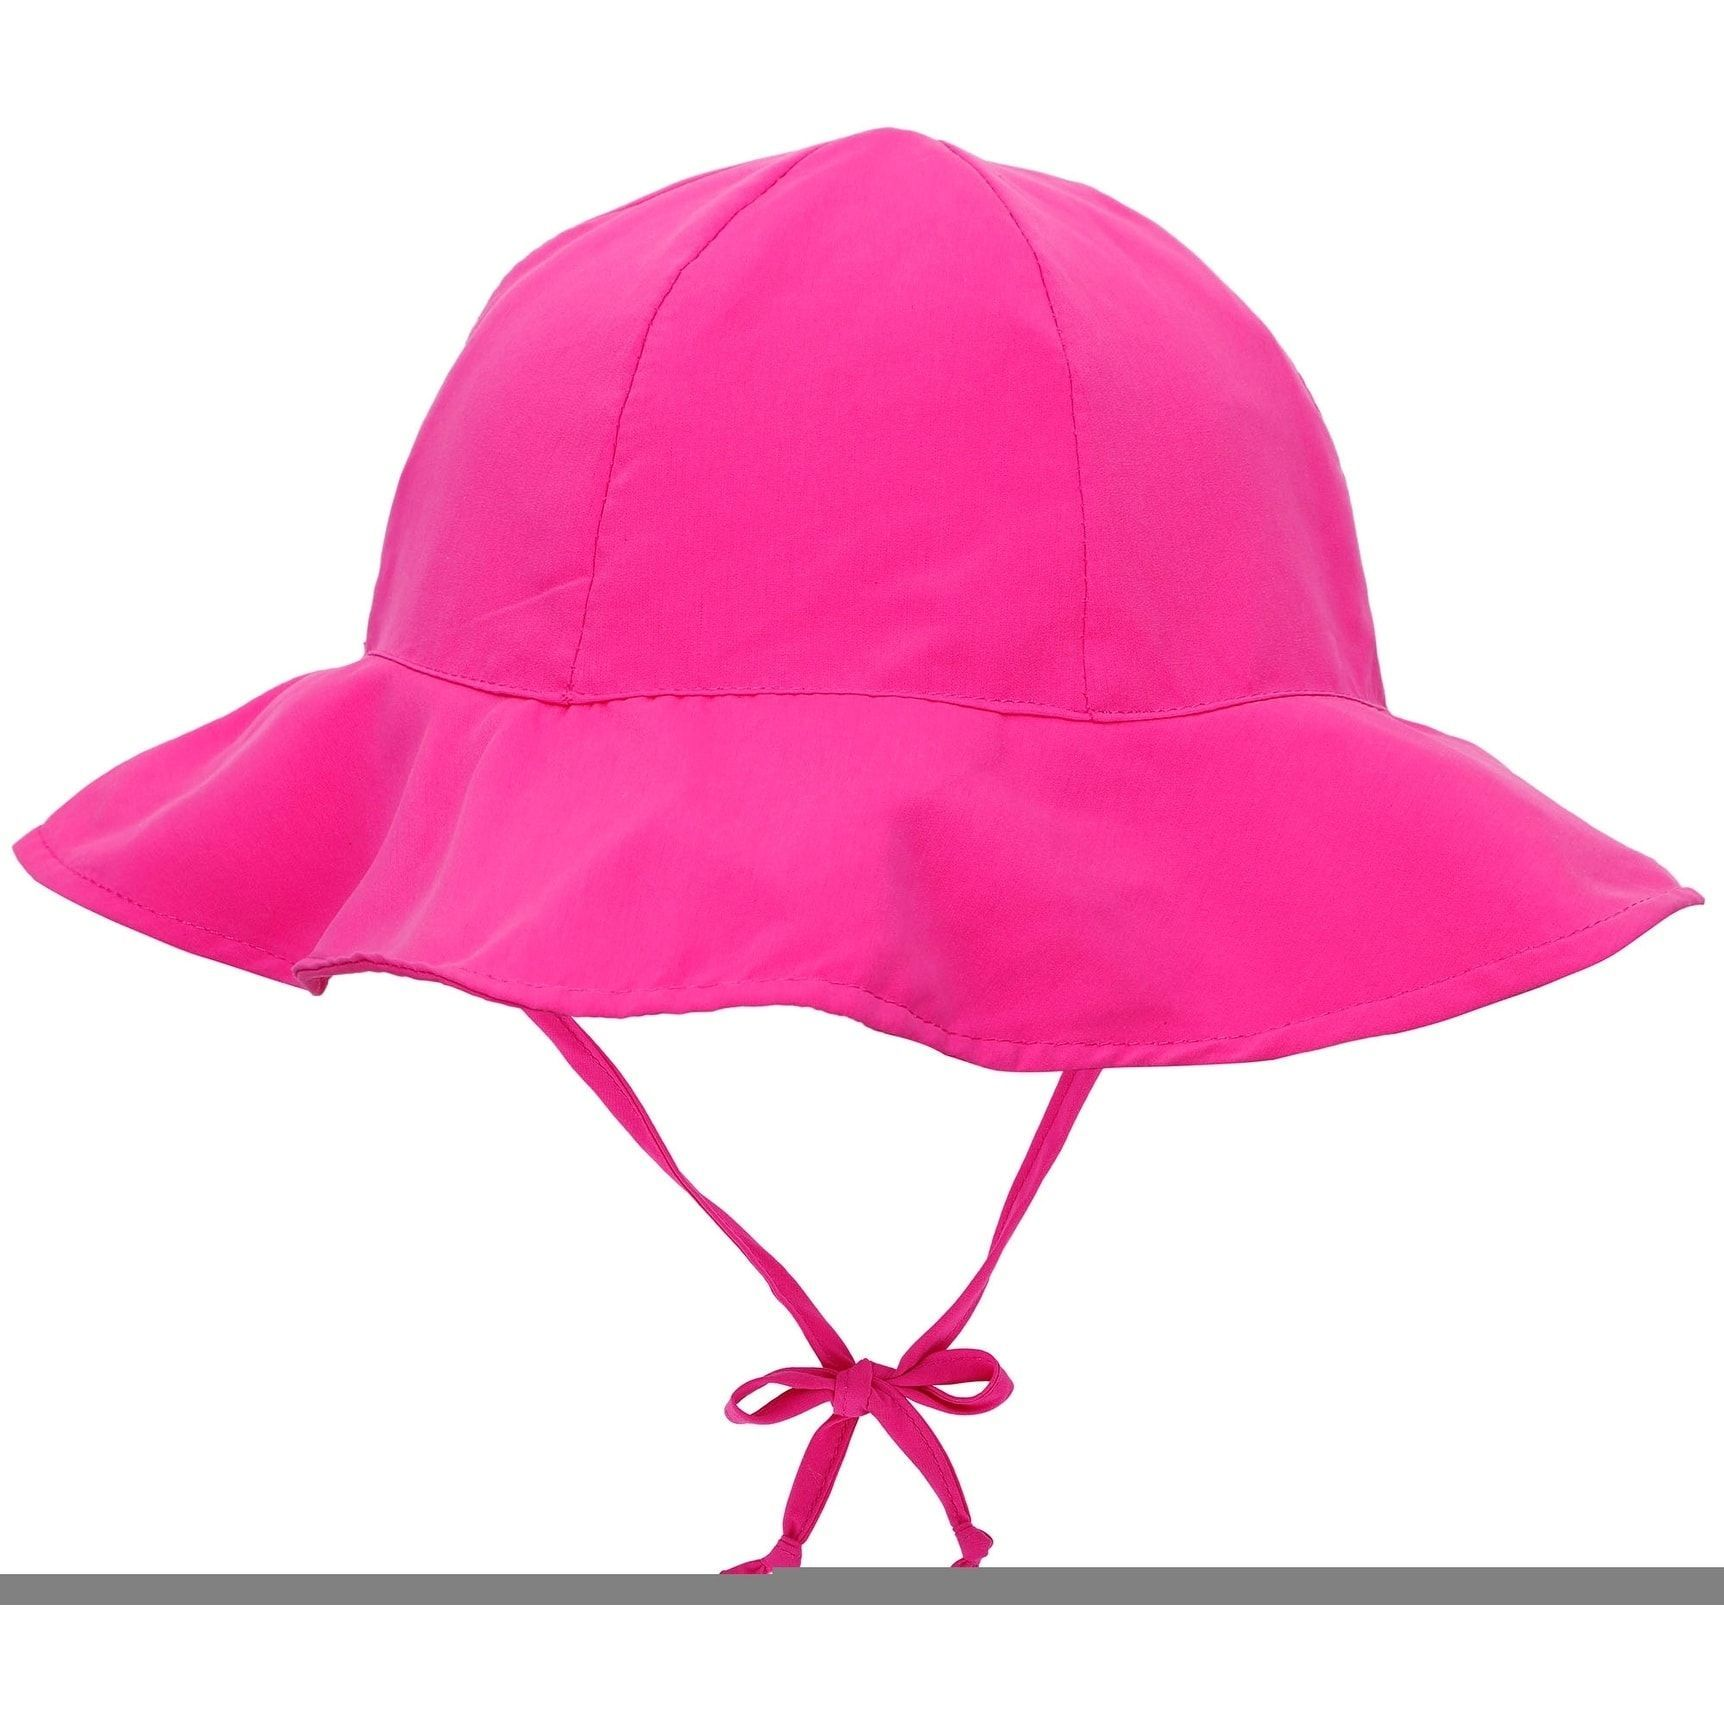 SimpliKids UPF 50+ UV Protection Wide Brim Infant and Toddler Sun ... c1a0dfac3e2